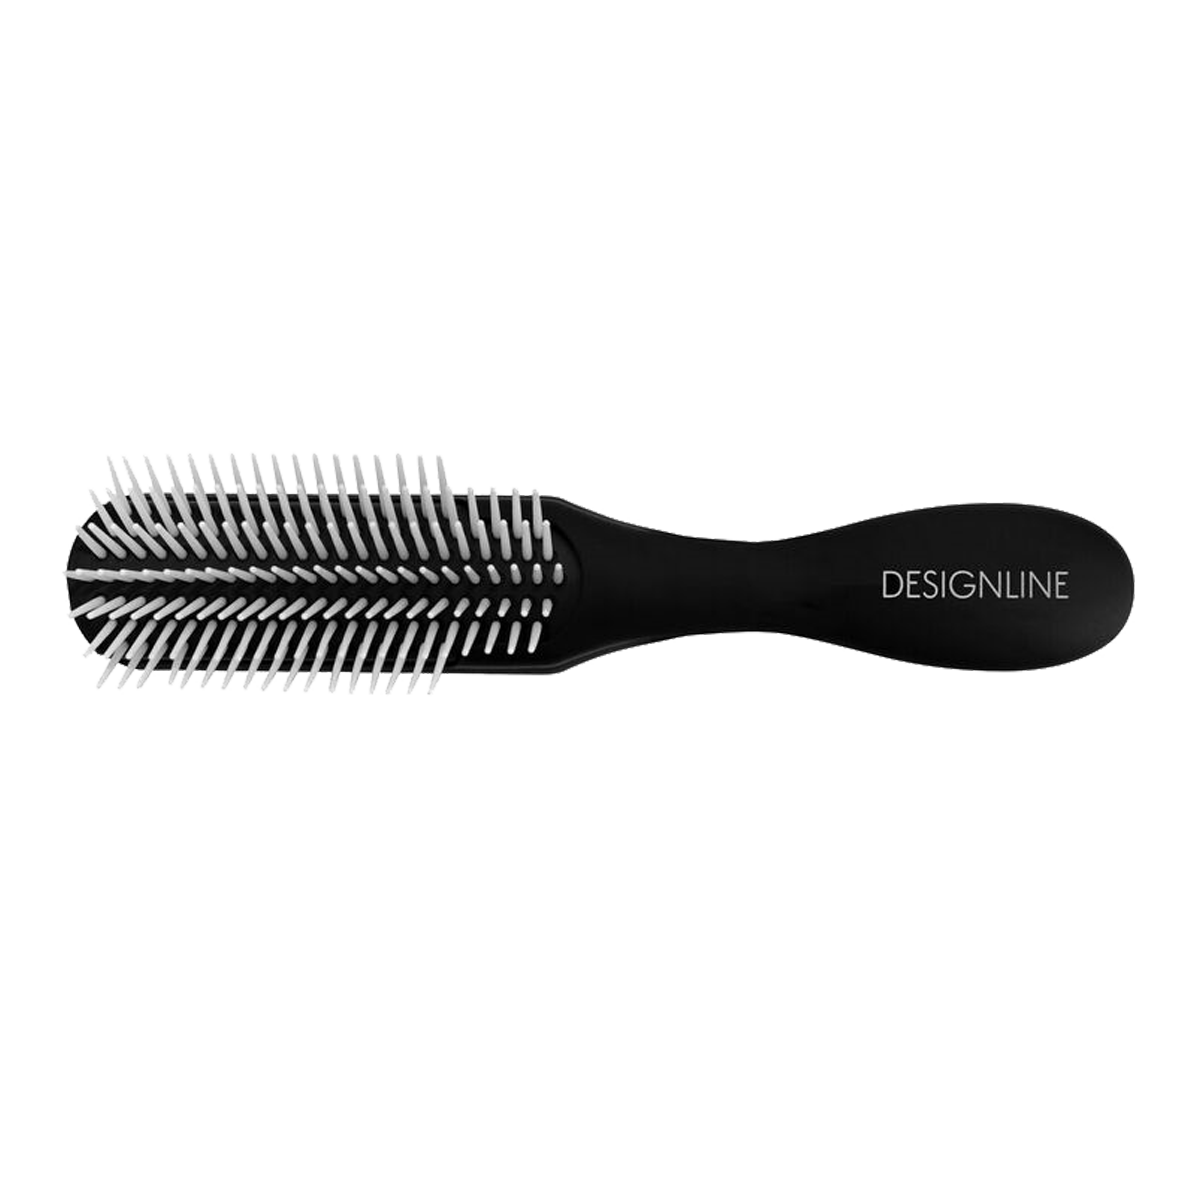 DESIGNLINE Thermal Styling brush